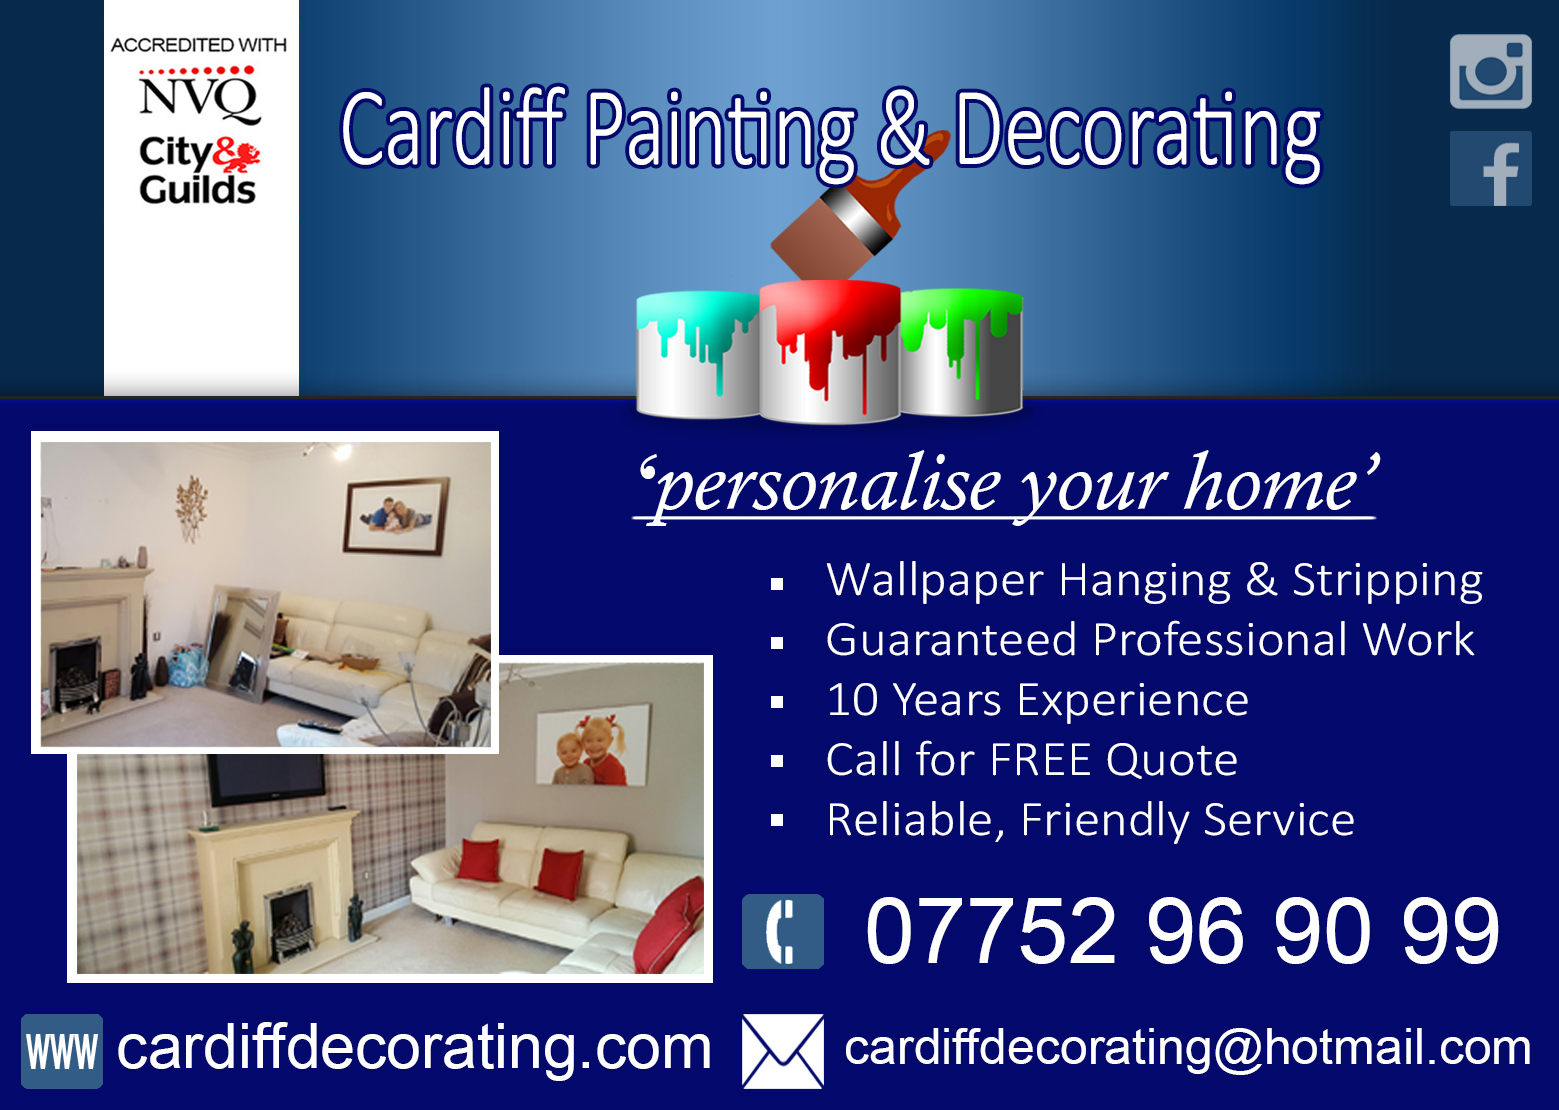 cardiff painting & decorating advert blurred faces